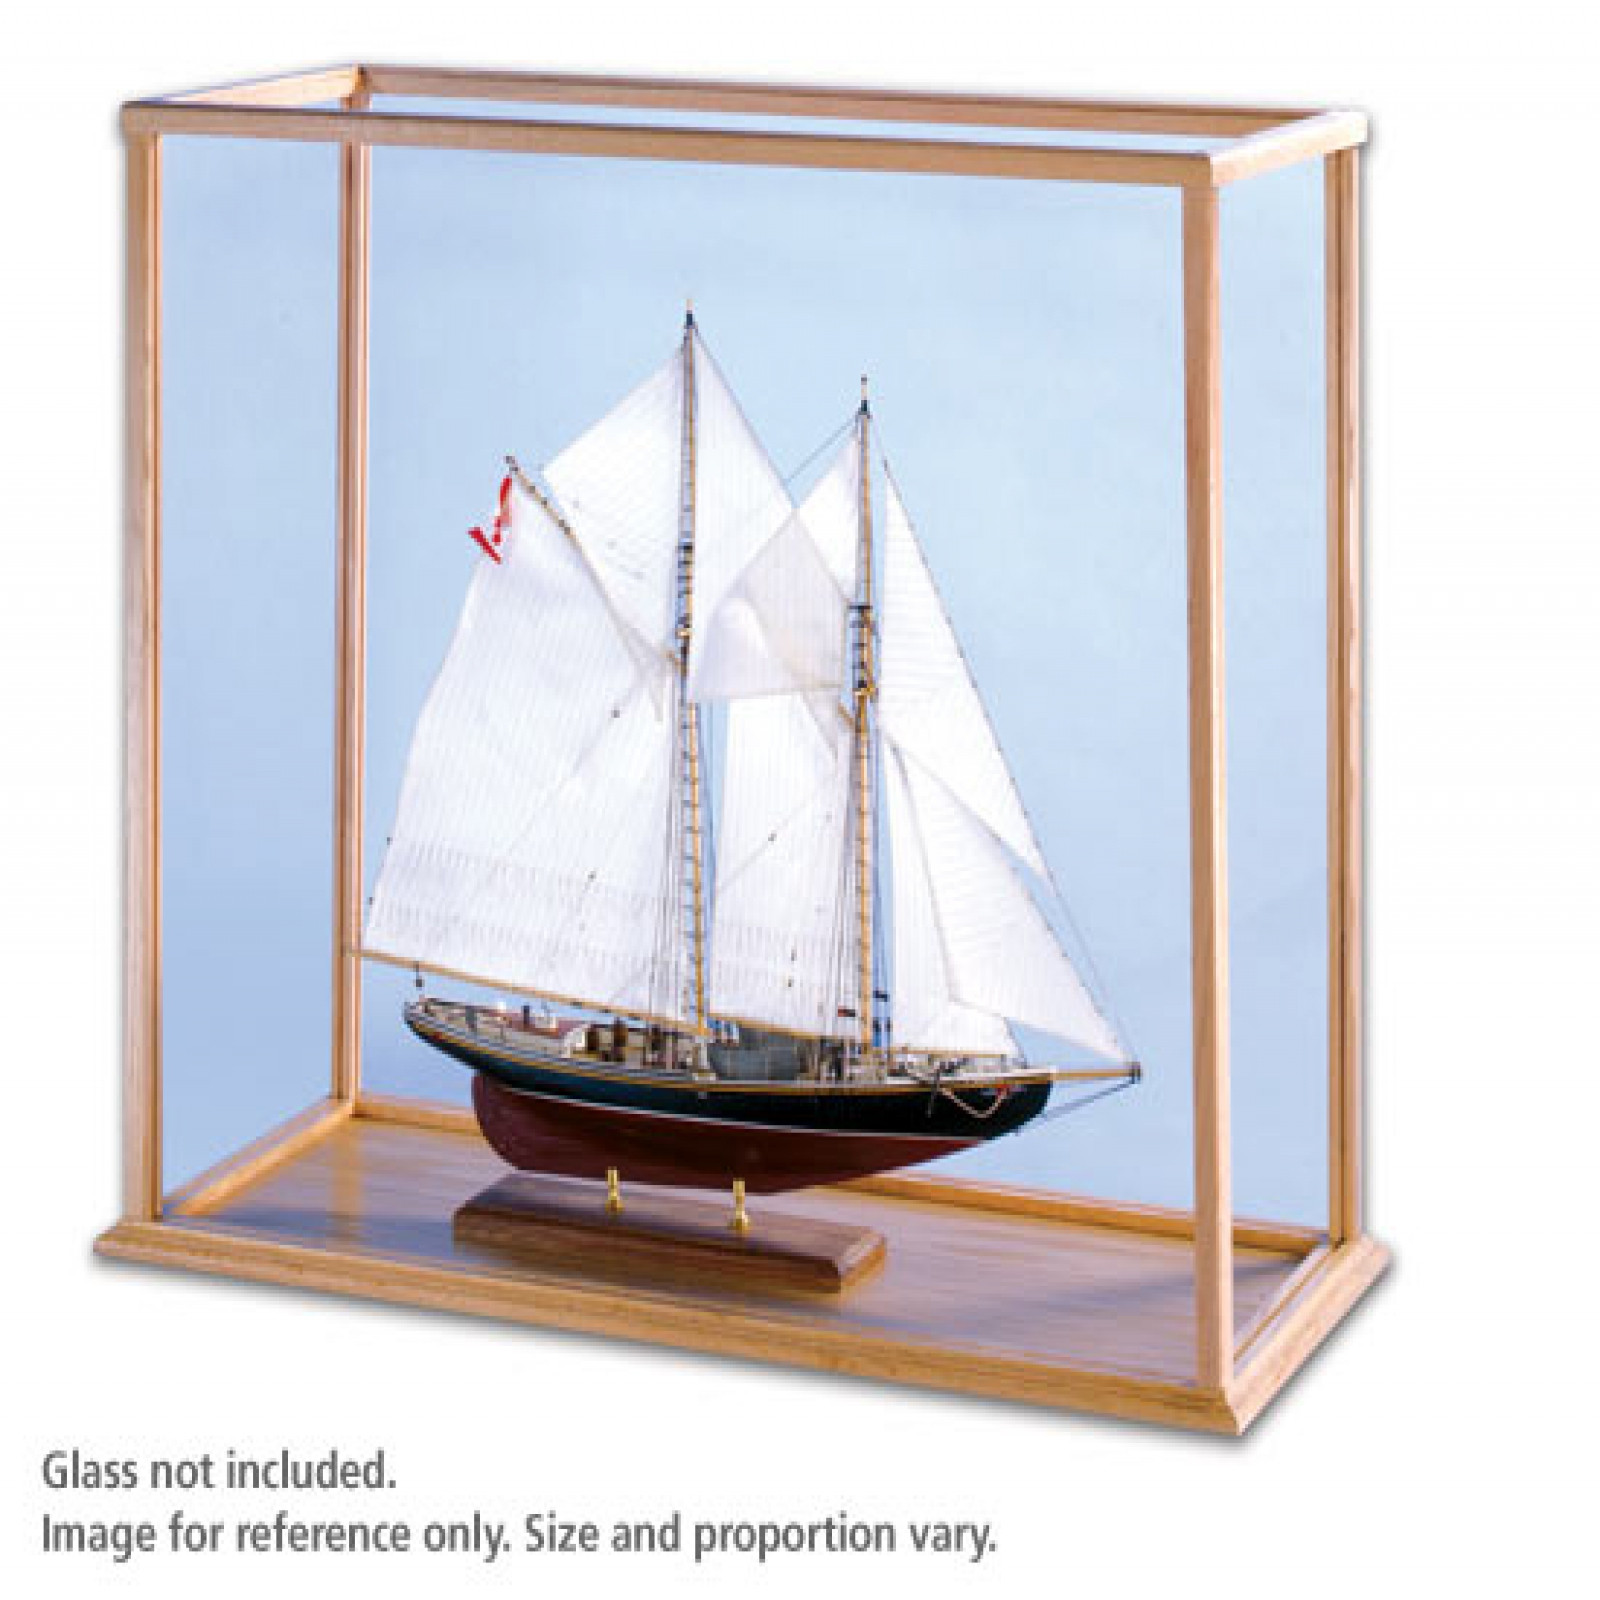 OAK SHIP MODEL CASE   L22 X W10 X H20   KIT